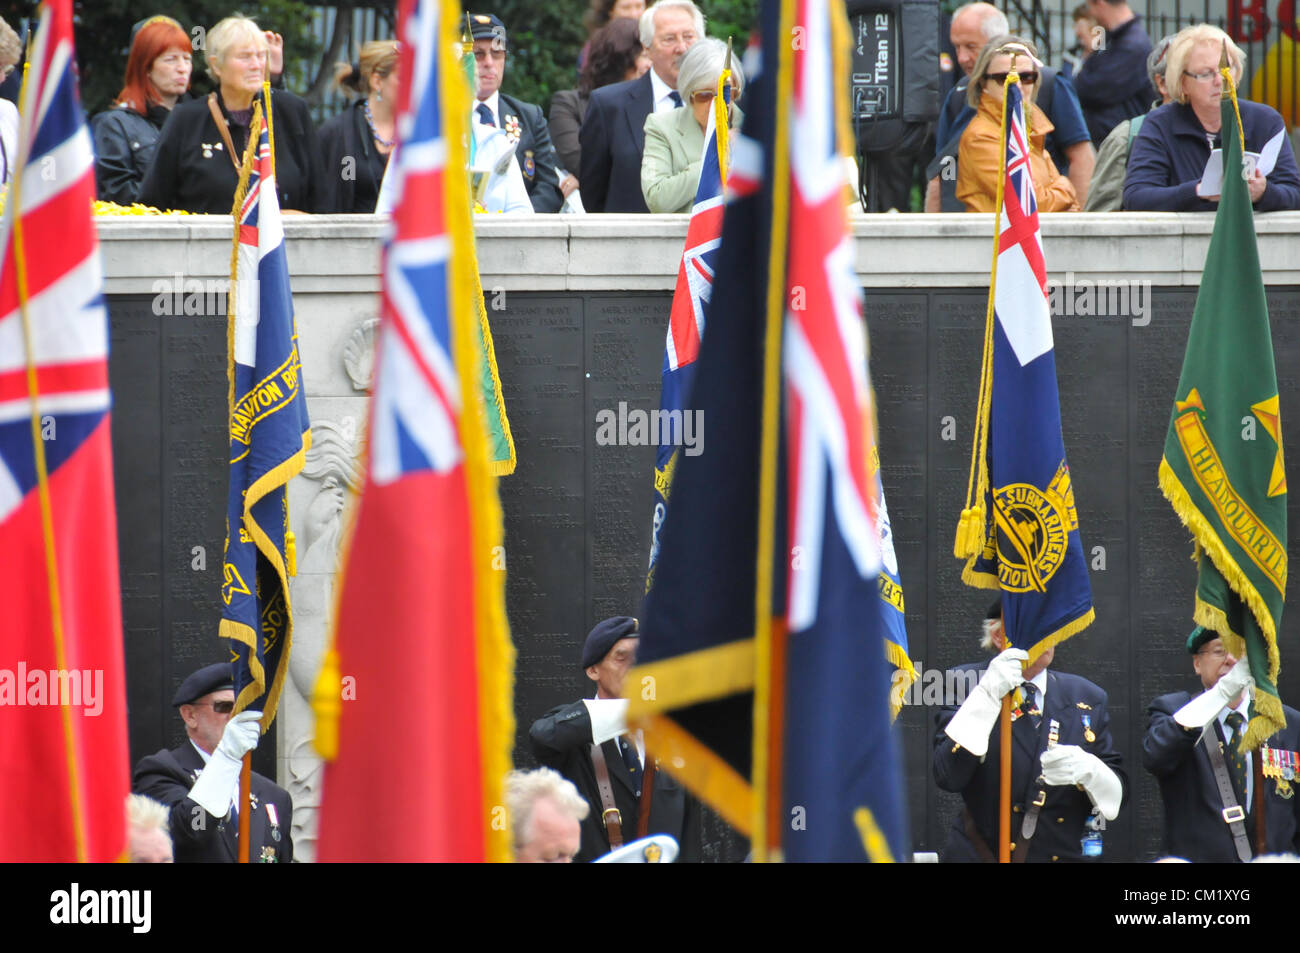 Trinity Square Gardens, London, UK. 16th September 2012. Standard Bearers and the crowd look on. The Merchant Navy - Stock Image